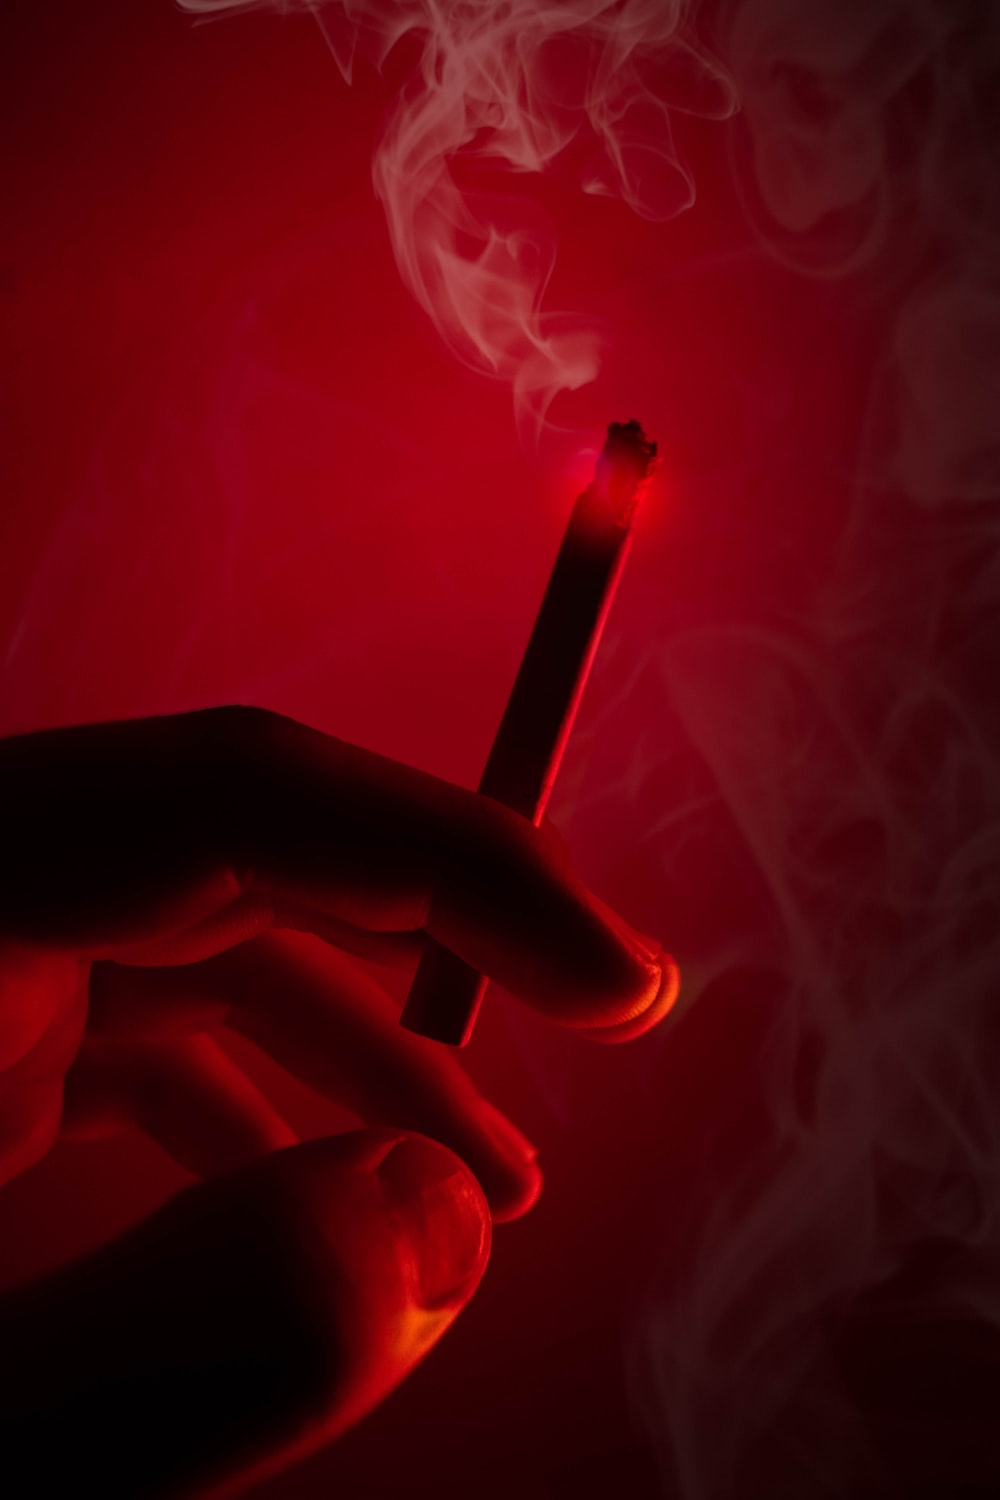 person holding lighted cigarette stick